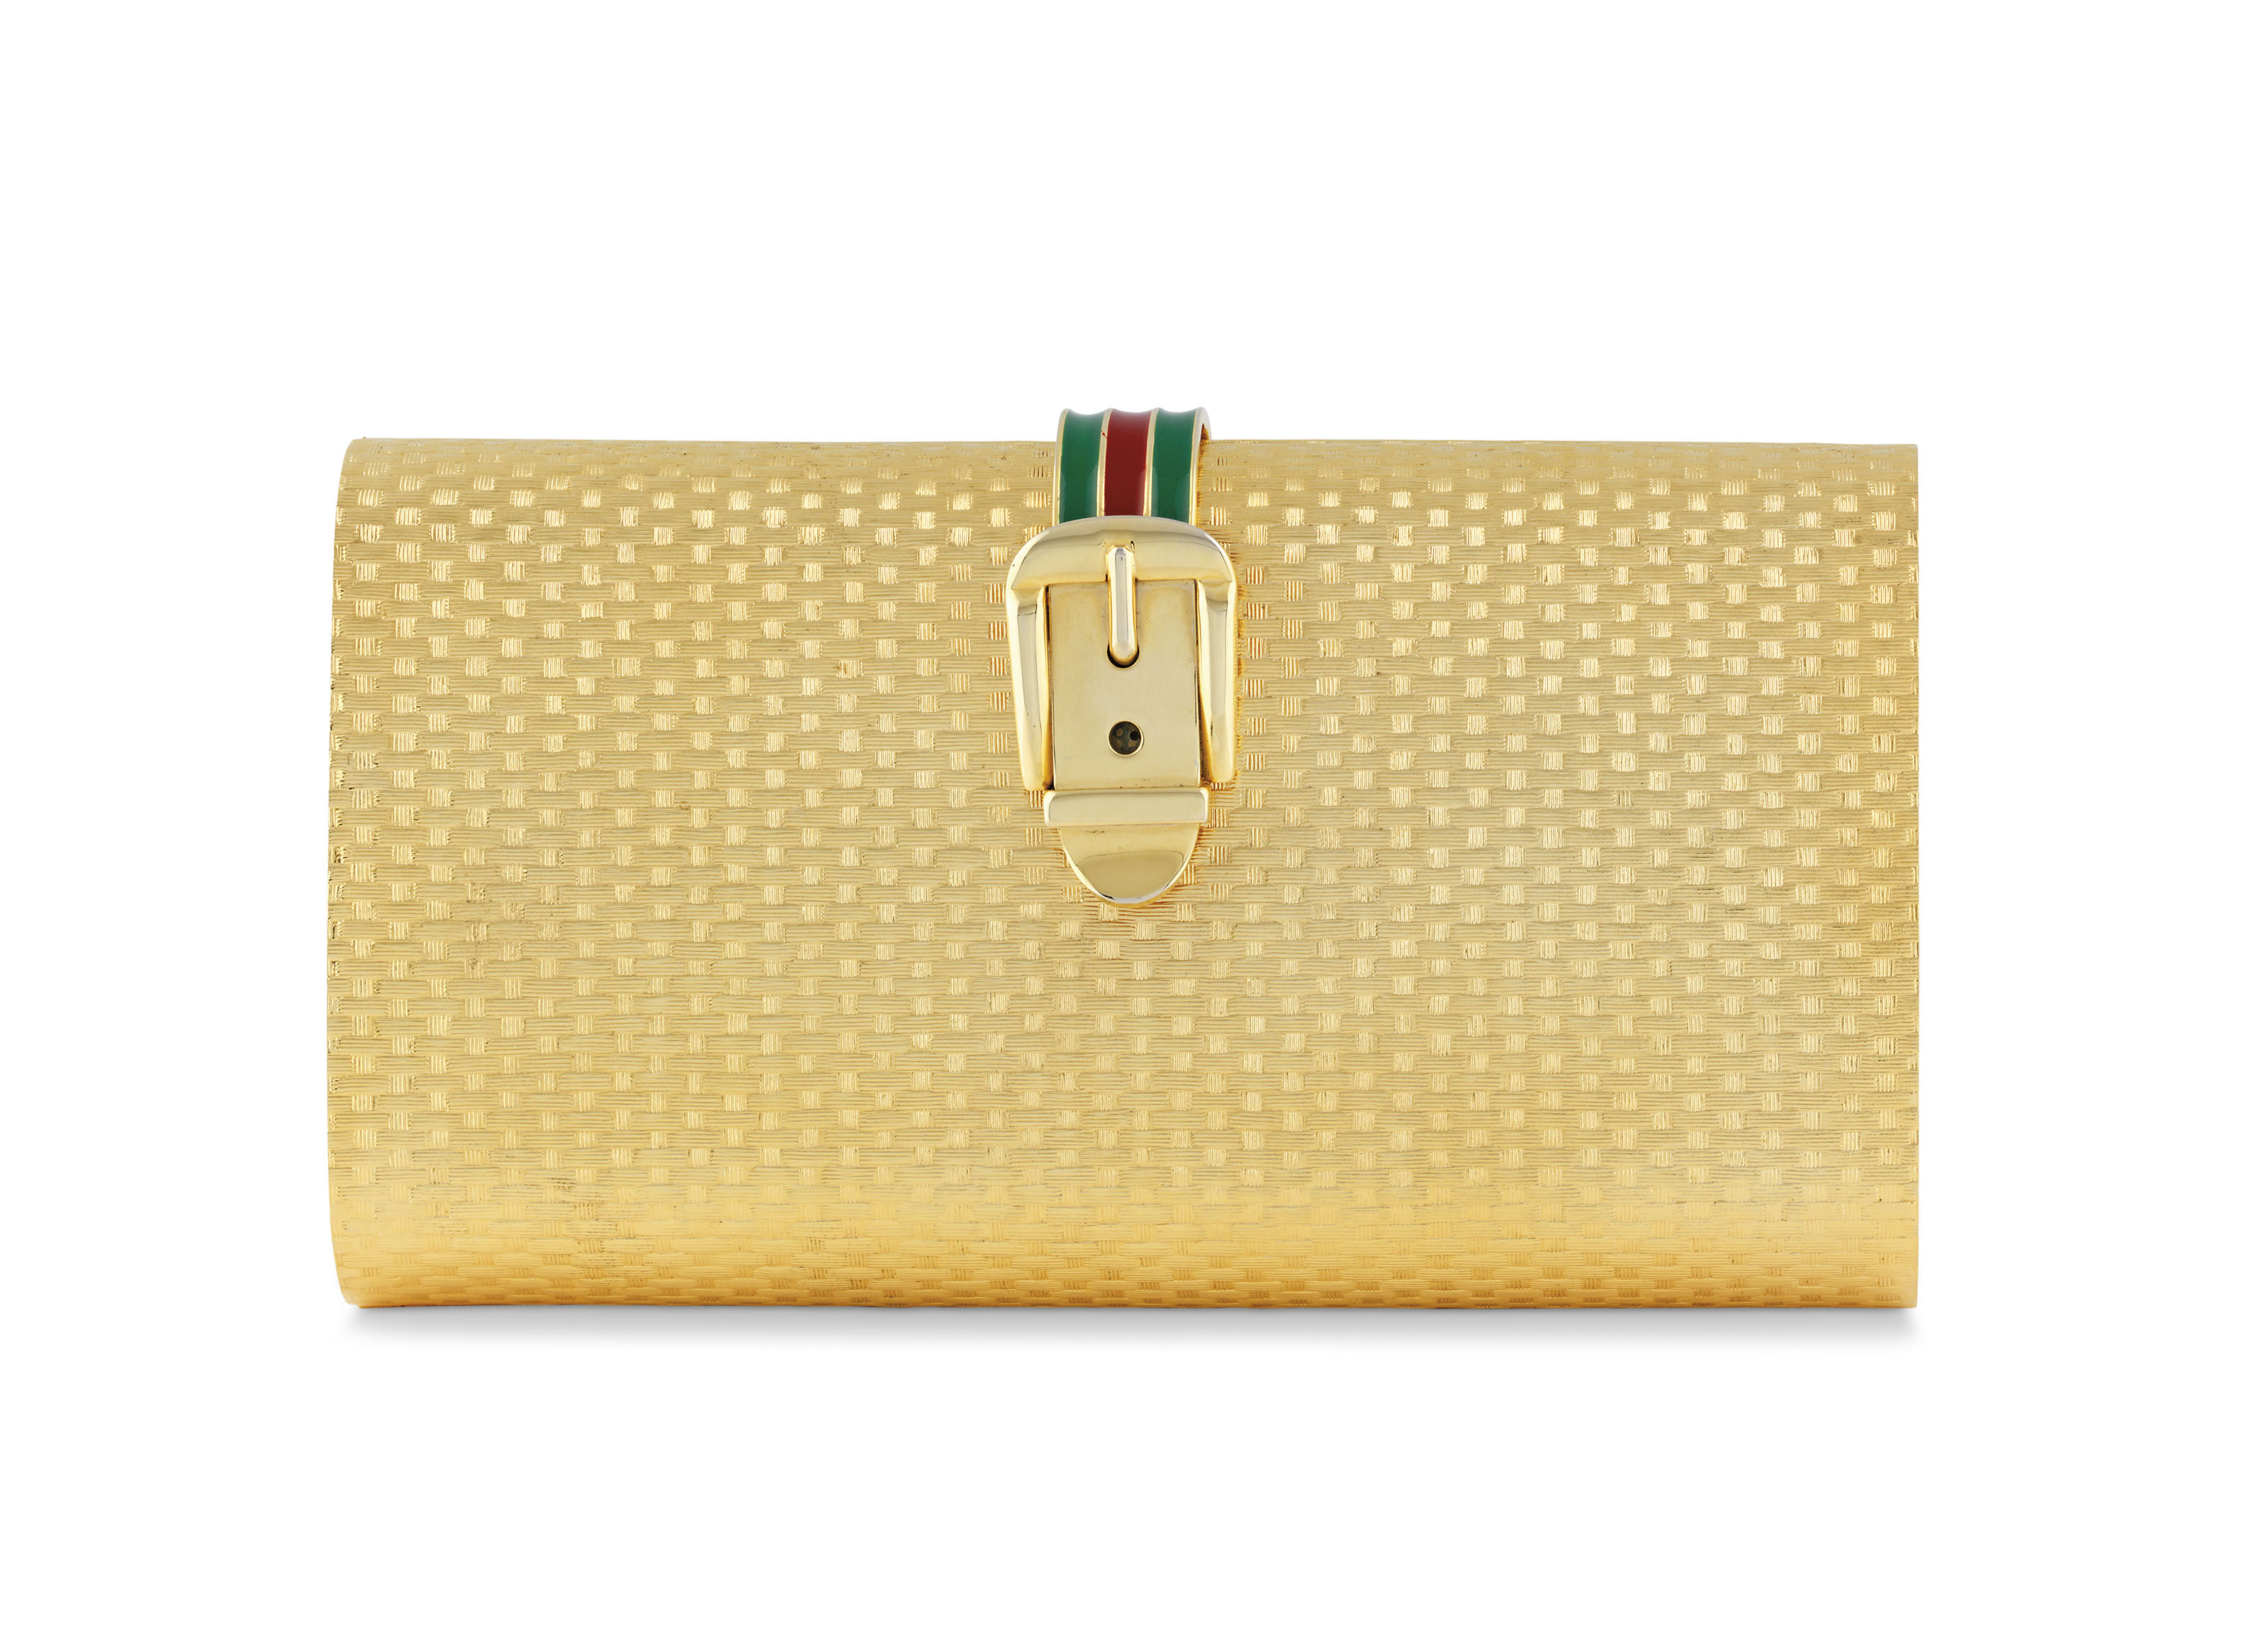 A GOLD METAL CLUTCH WITH ENAME